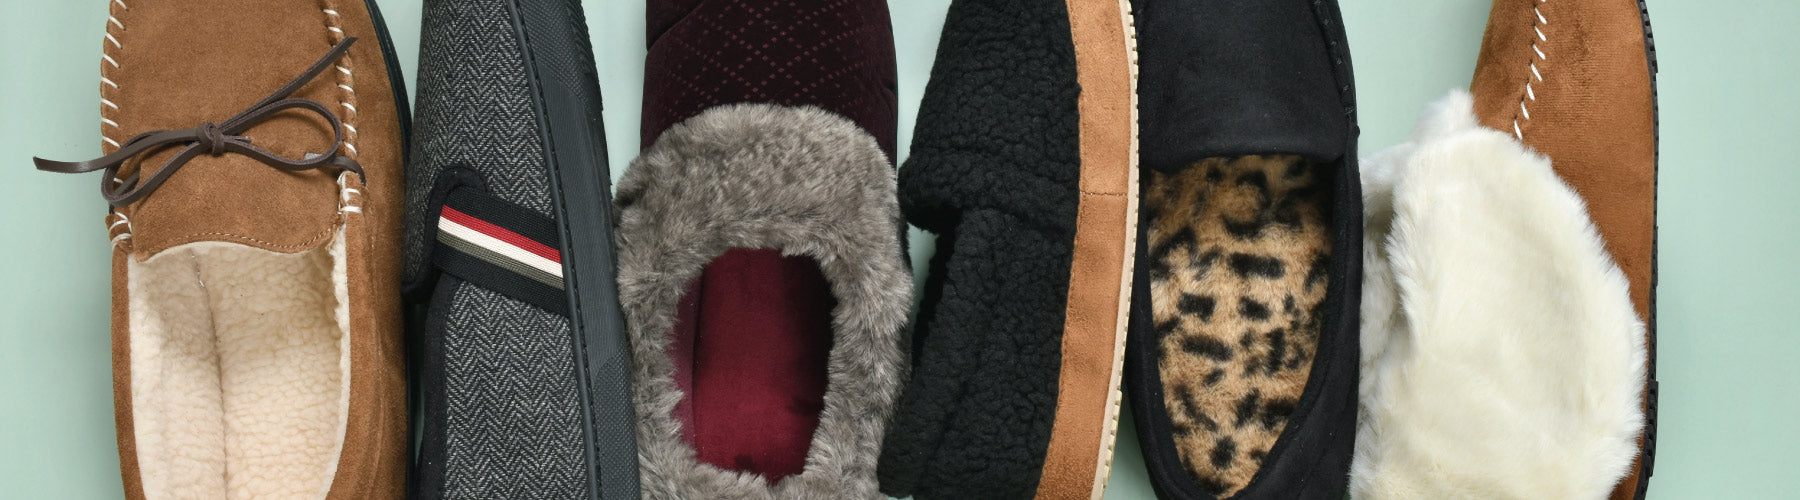 Flatlay of Men's and Women's New Arrival Slippers